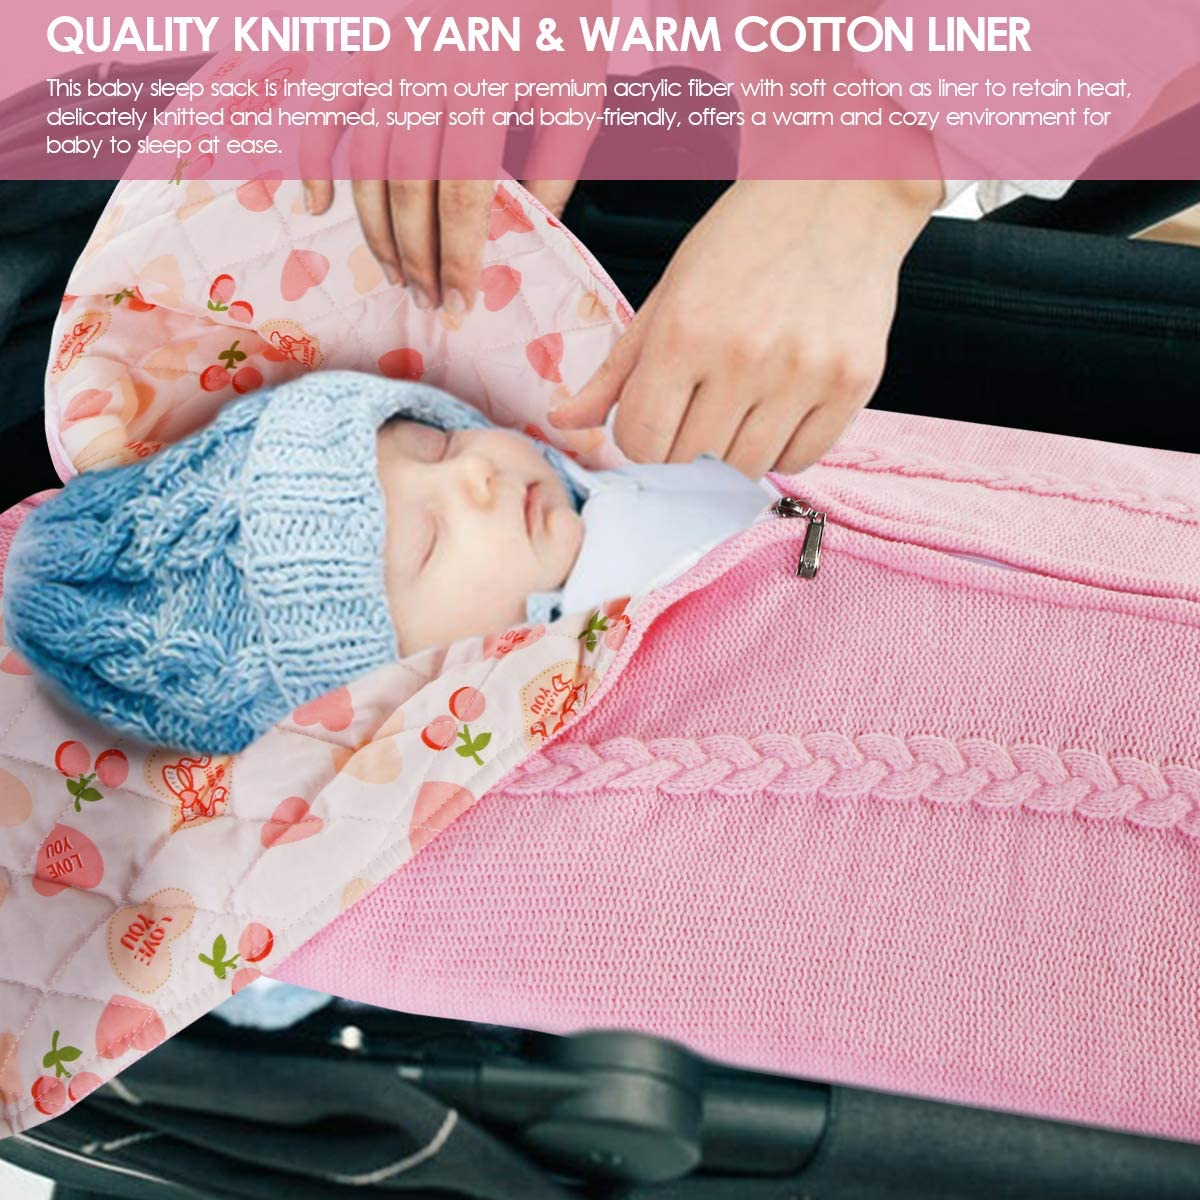 Eurobuy Newborn Baby Swaddle Unisex Baby Knit Stroller Wrap Blanket Toddler Thick Warm Sleeping Bag for 0-12 Month Baby